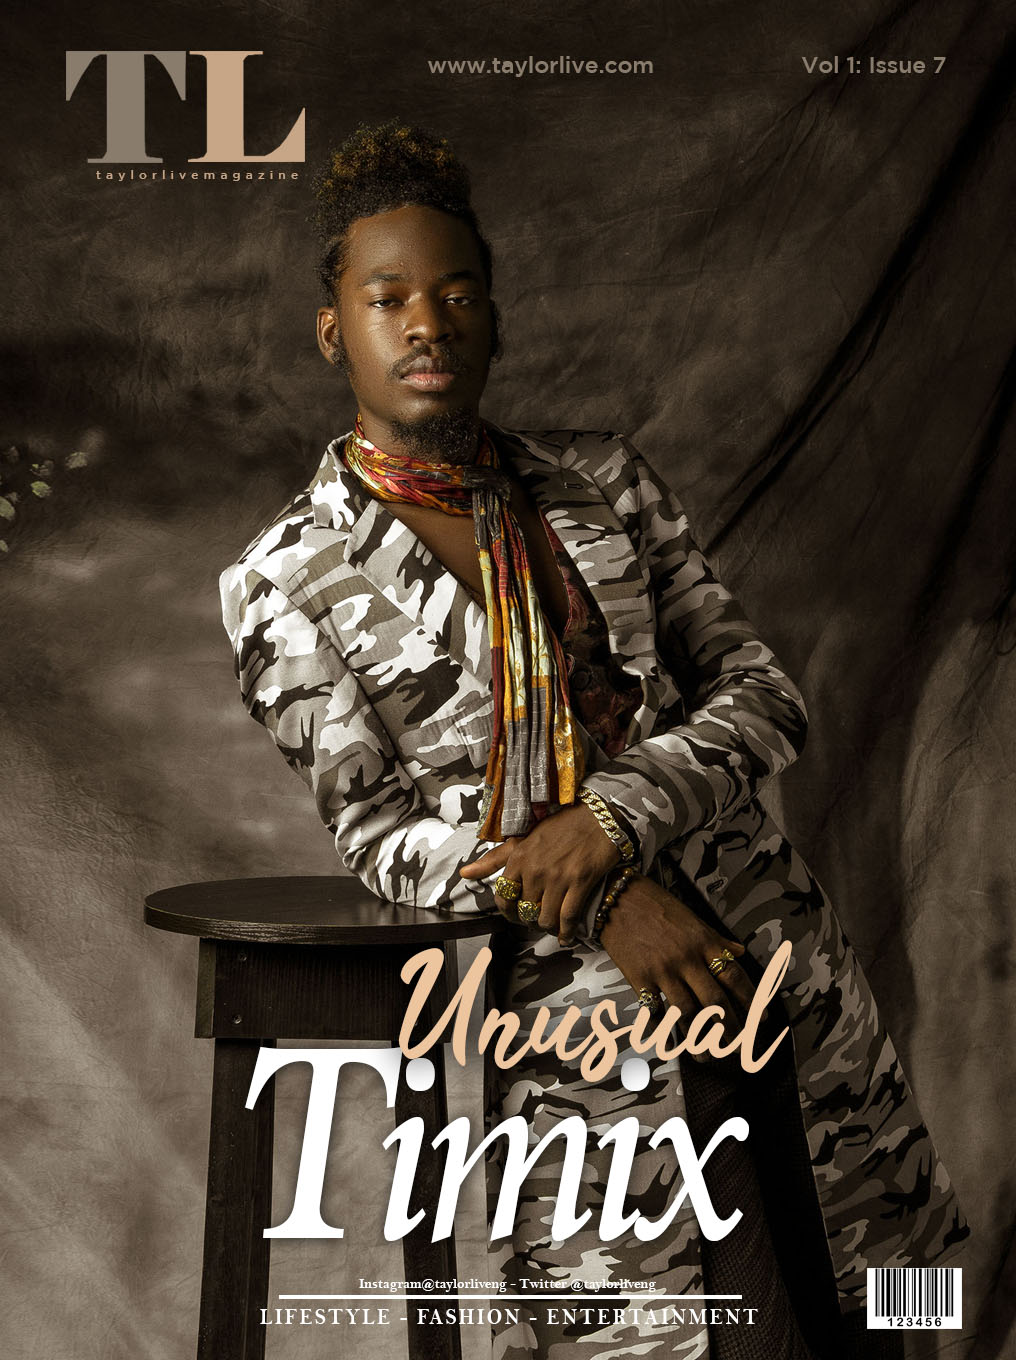 UNUSUAL Timix Covers Taylor Live Magazine's Latest Issue #TBT